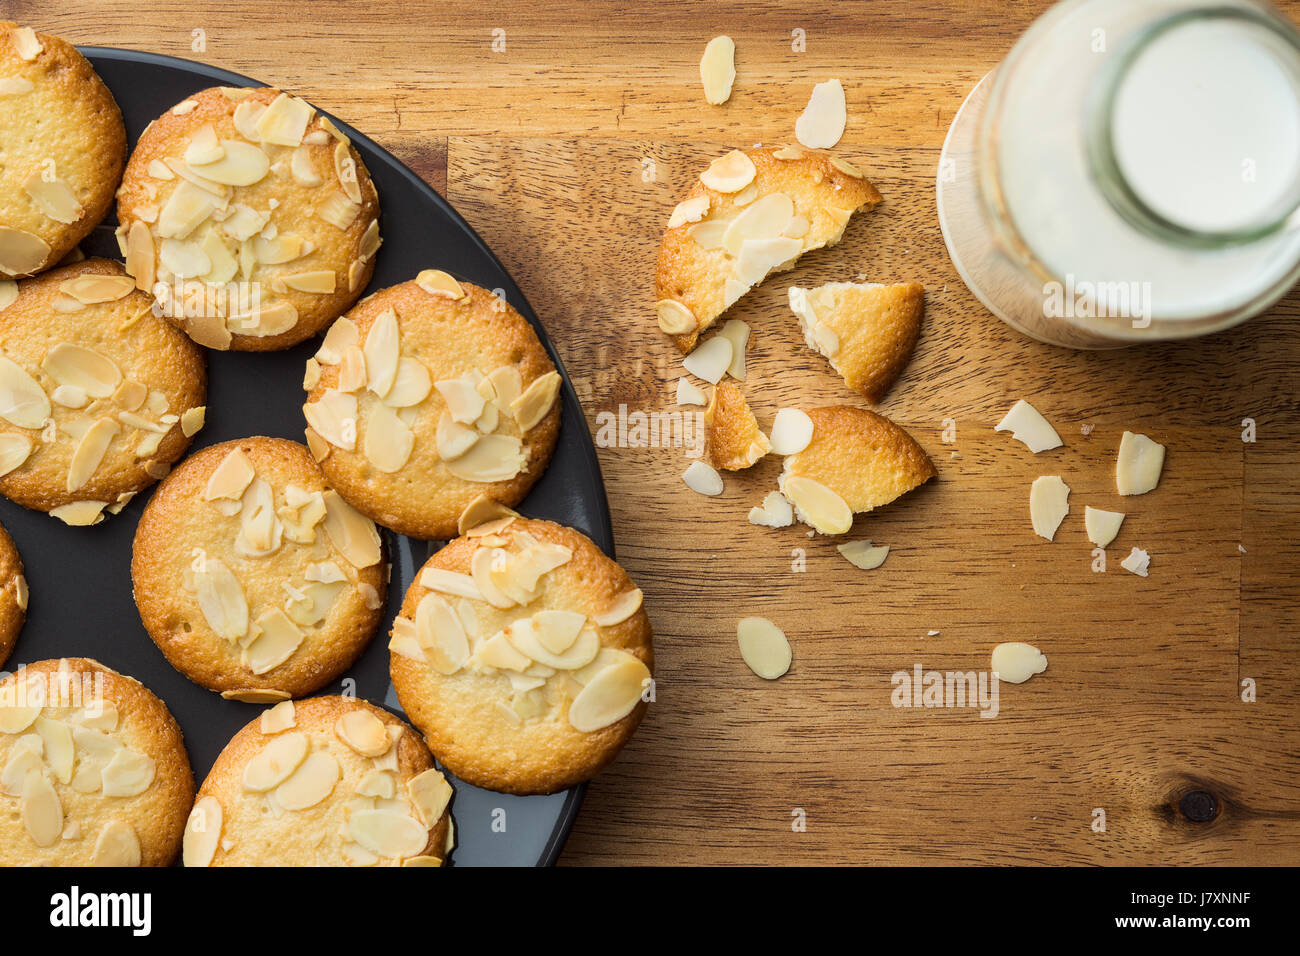 Sweet almond cookies with milk on wooden table. Top view. - Stock Image